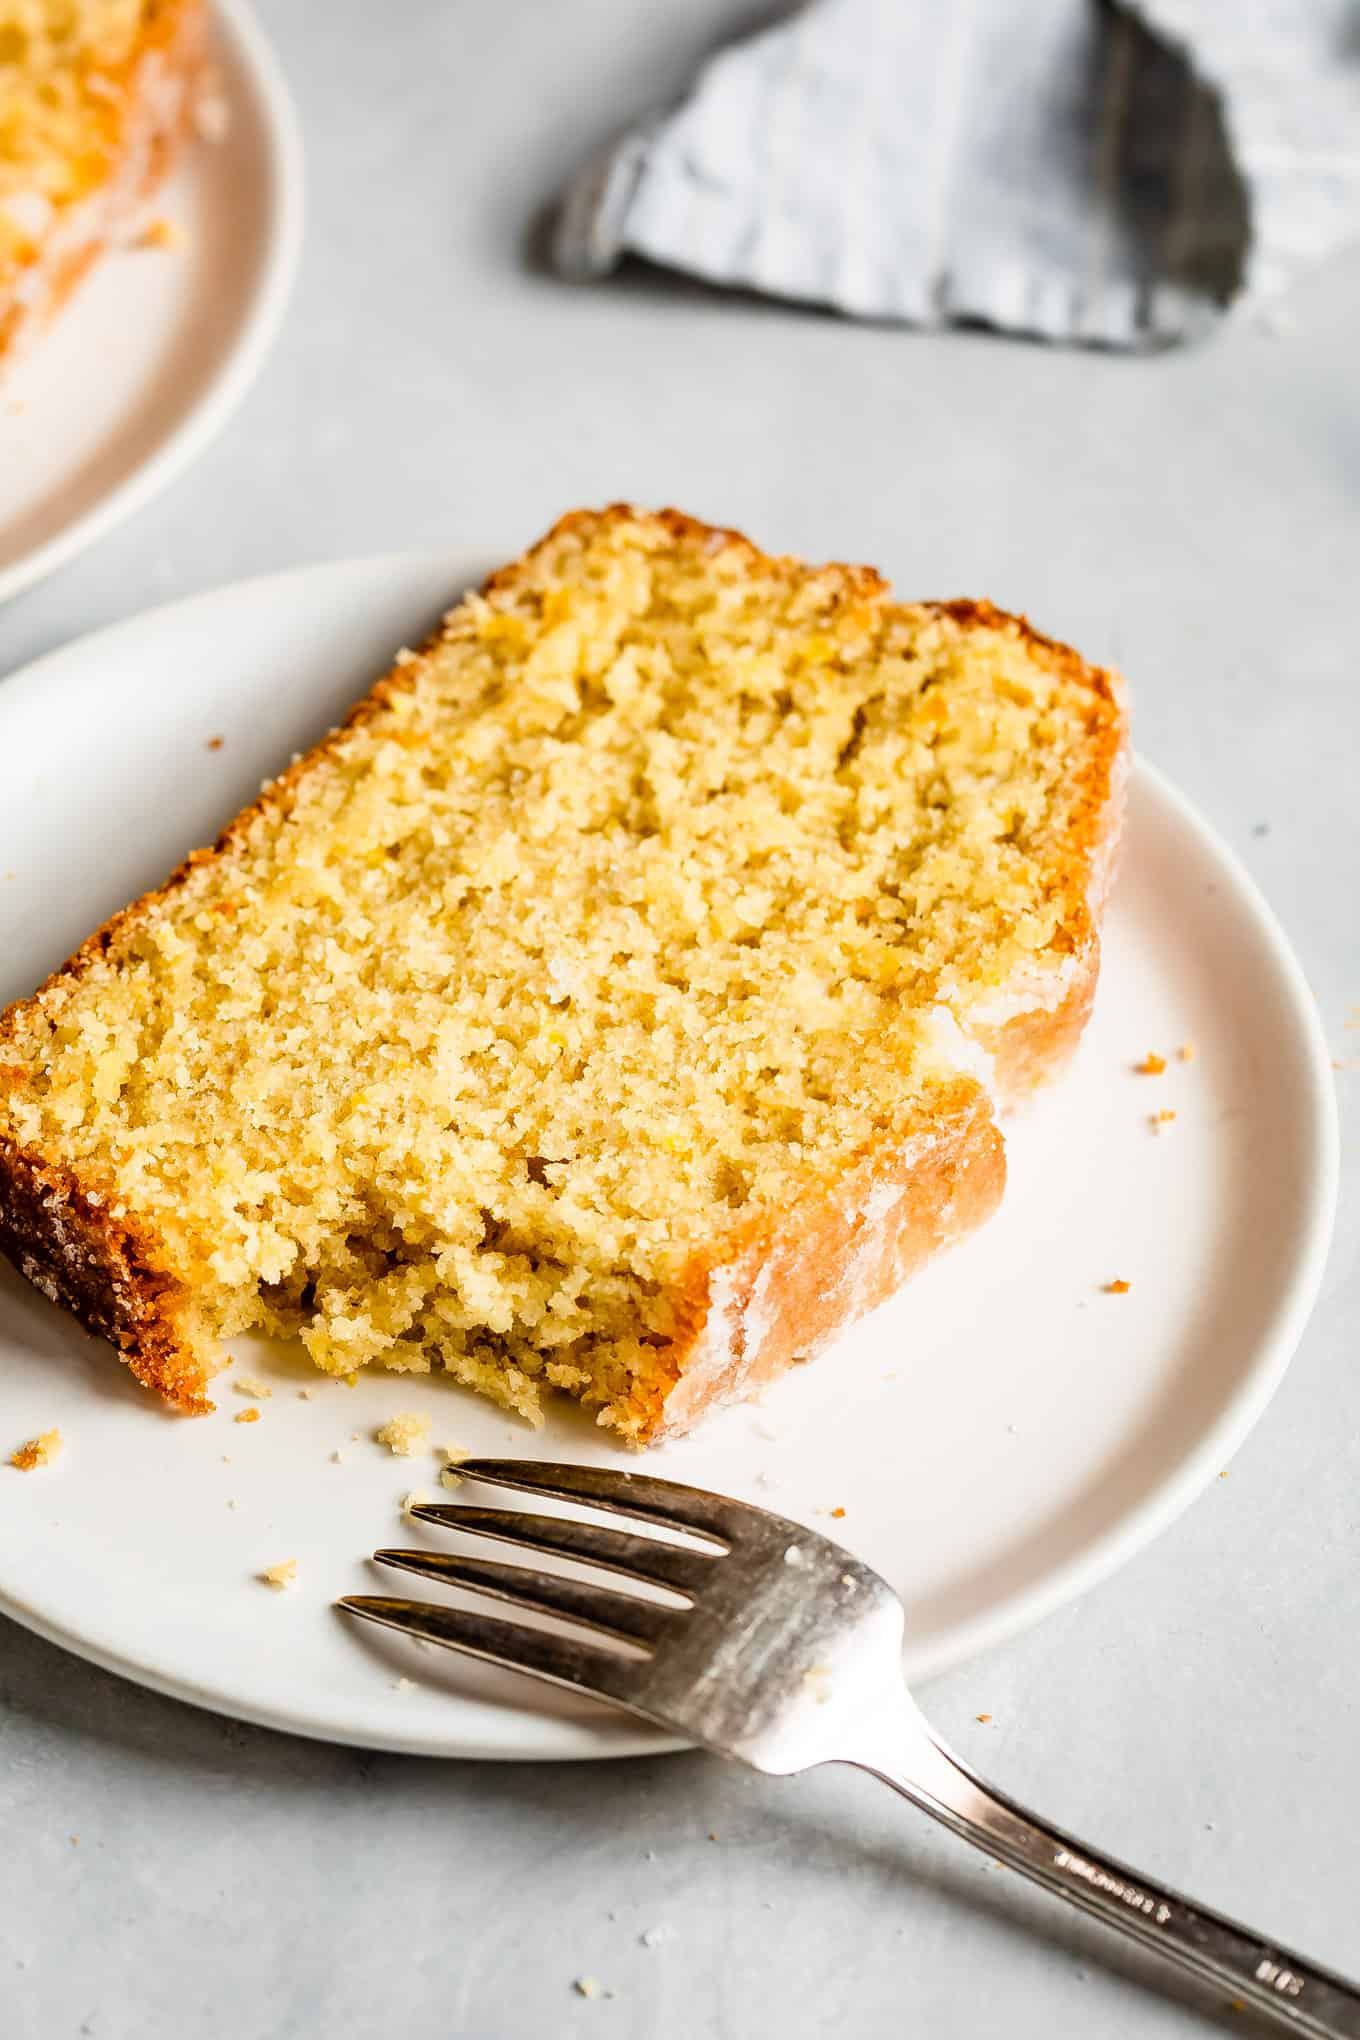 Gluten-Free Lemon Loaf Slice on Plate